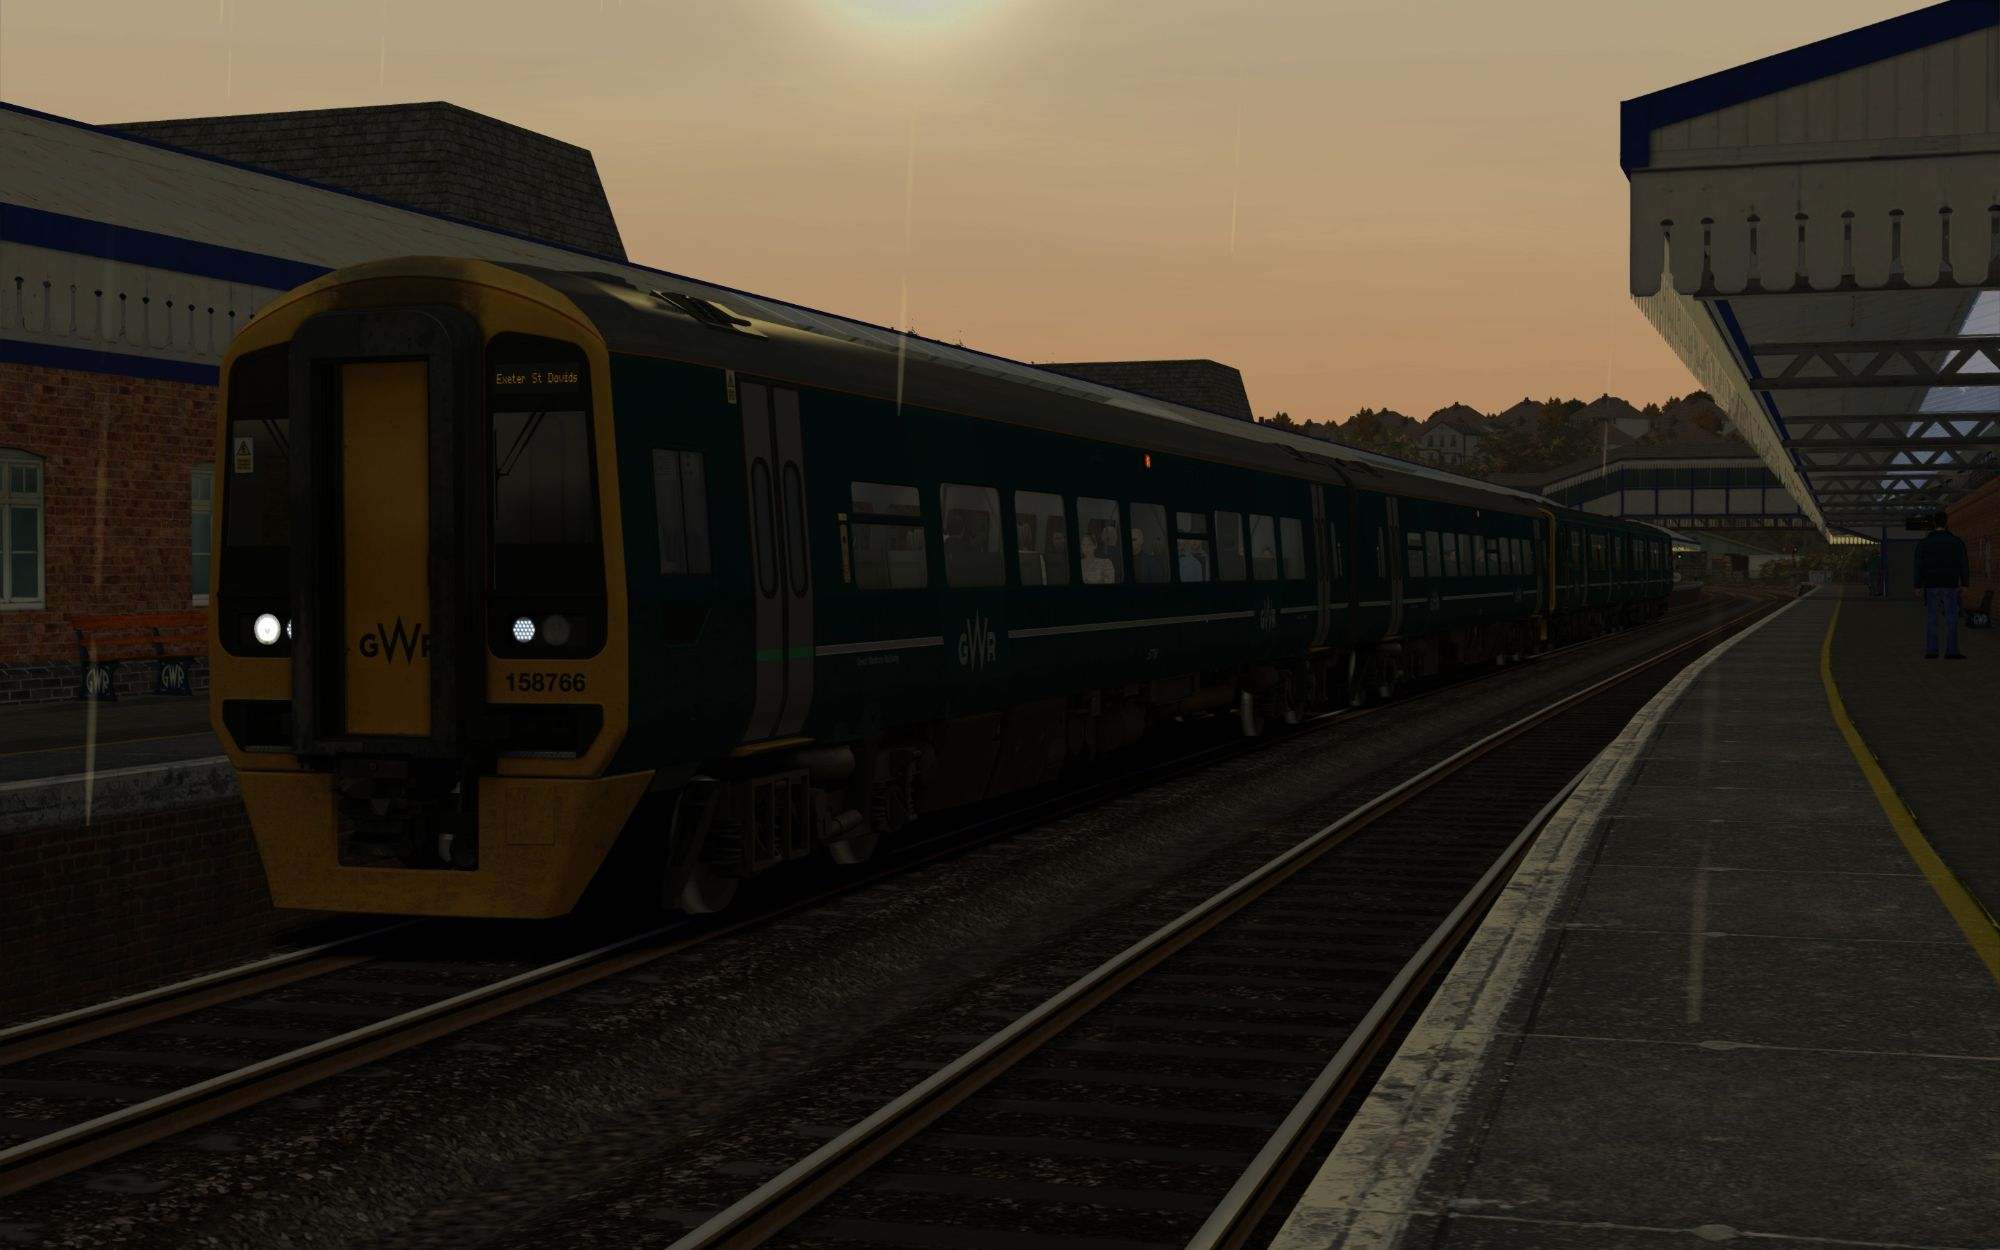 Image showing screenshot of the 2Z88 - 1735 Truro to Exeter St Davids scenario